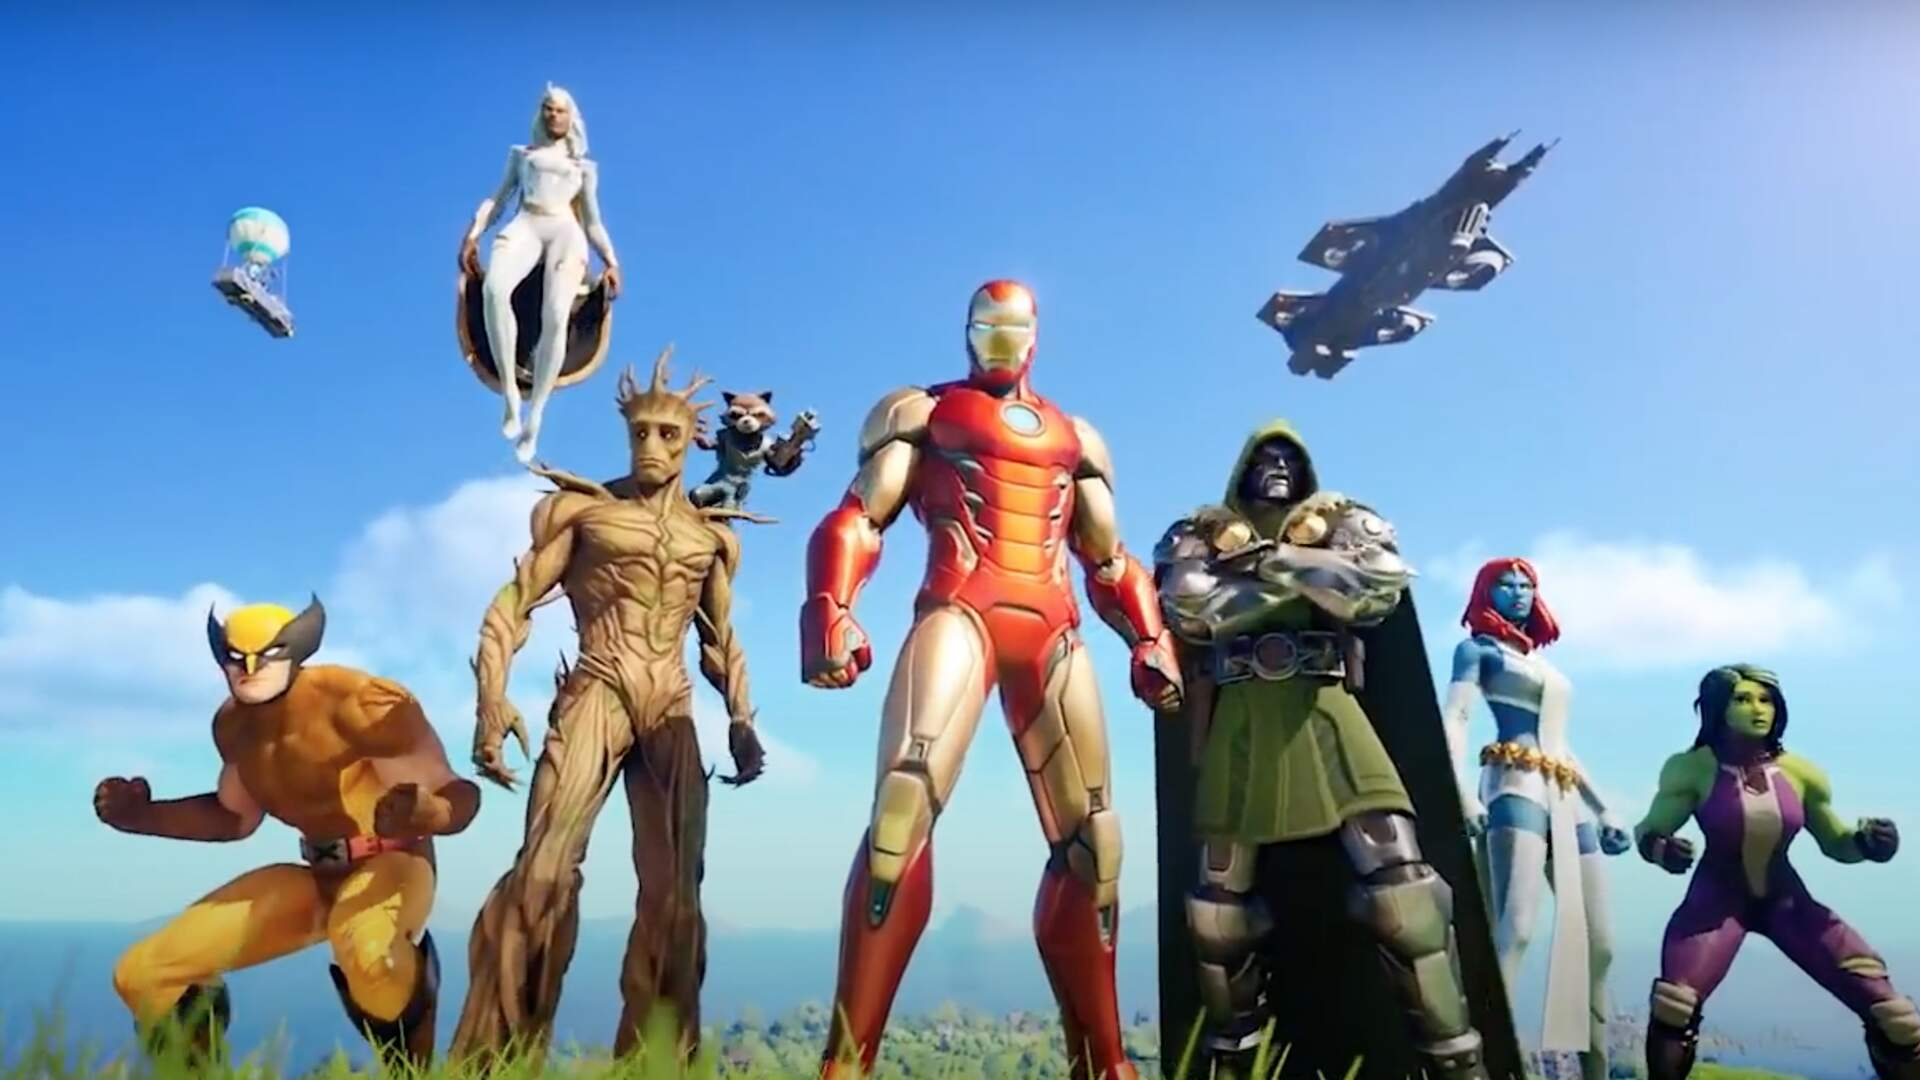 Fortnite Chapter 2: Season 4 Introduces Thor, Wolverine, She-Hulk, and More Marvel Characters